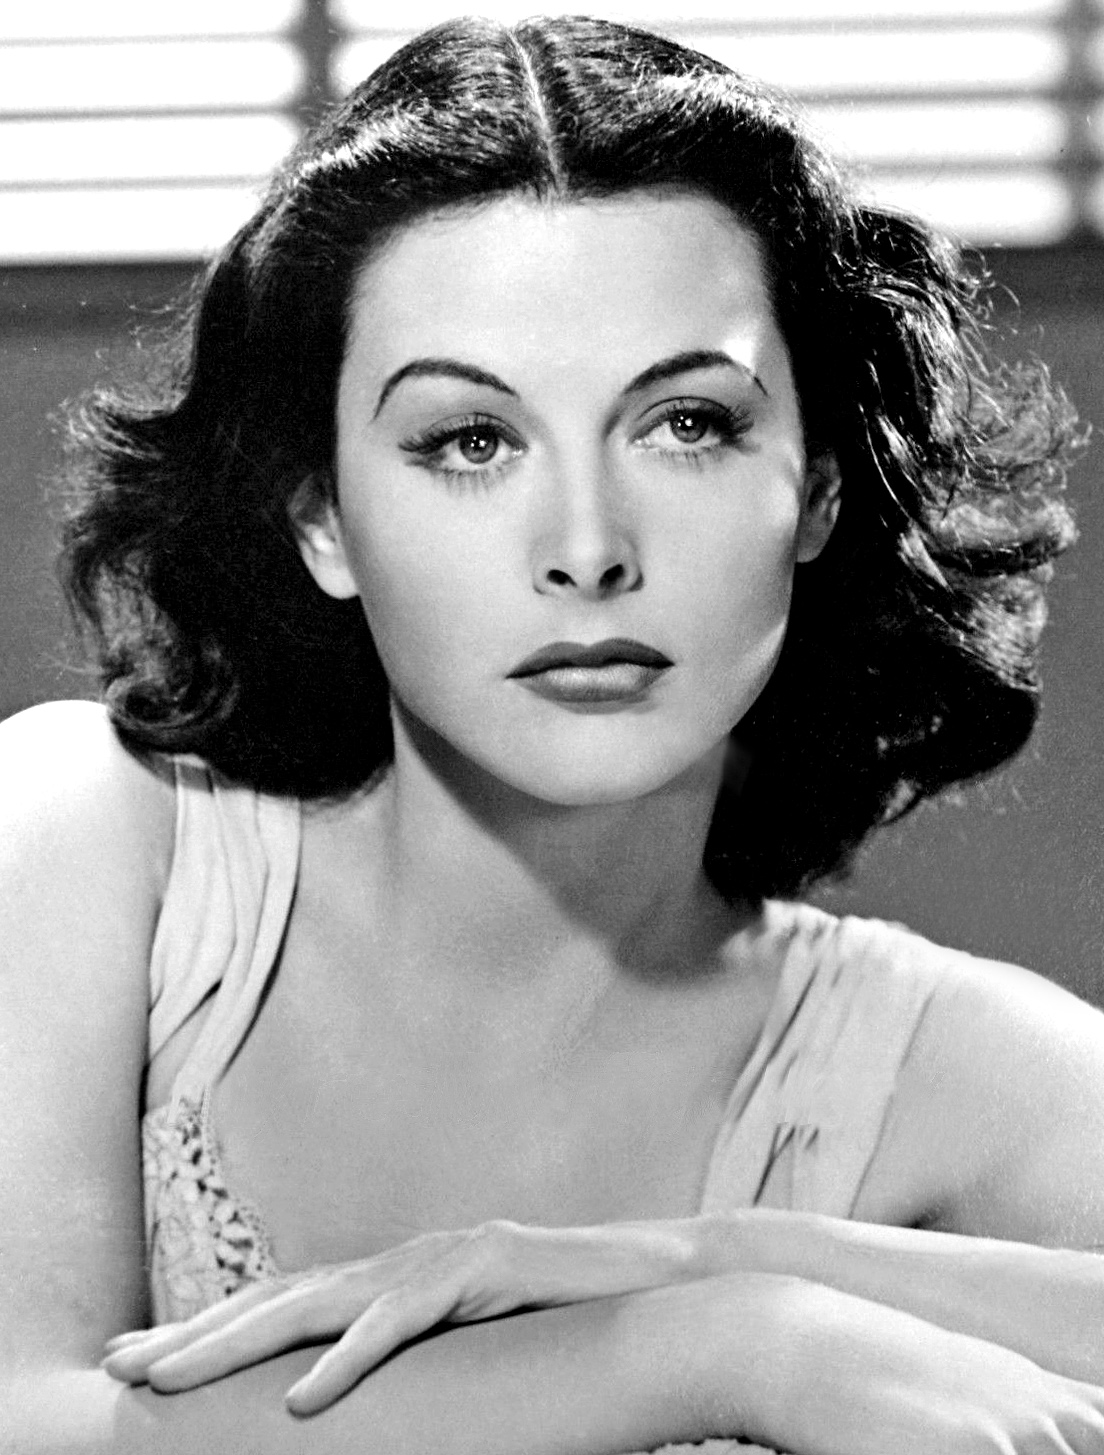 posts/2017-07-10-hedy-lamarr-more-than-the-most-beautiful-woman-in-the-world/Hedy_lamarr-1940.jpg